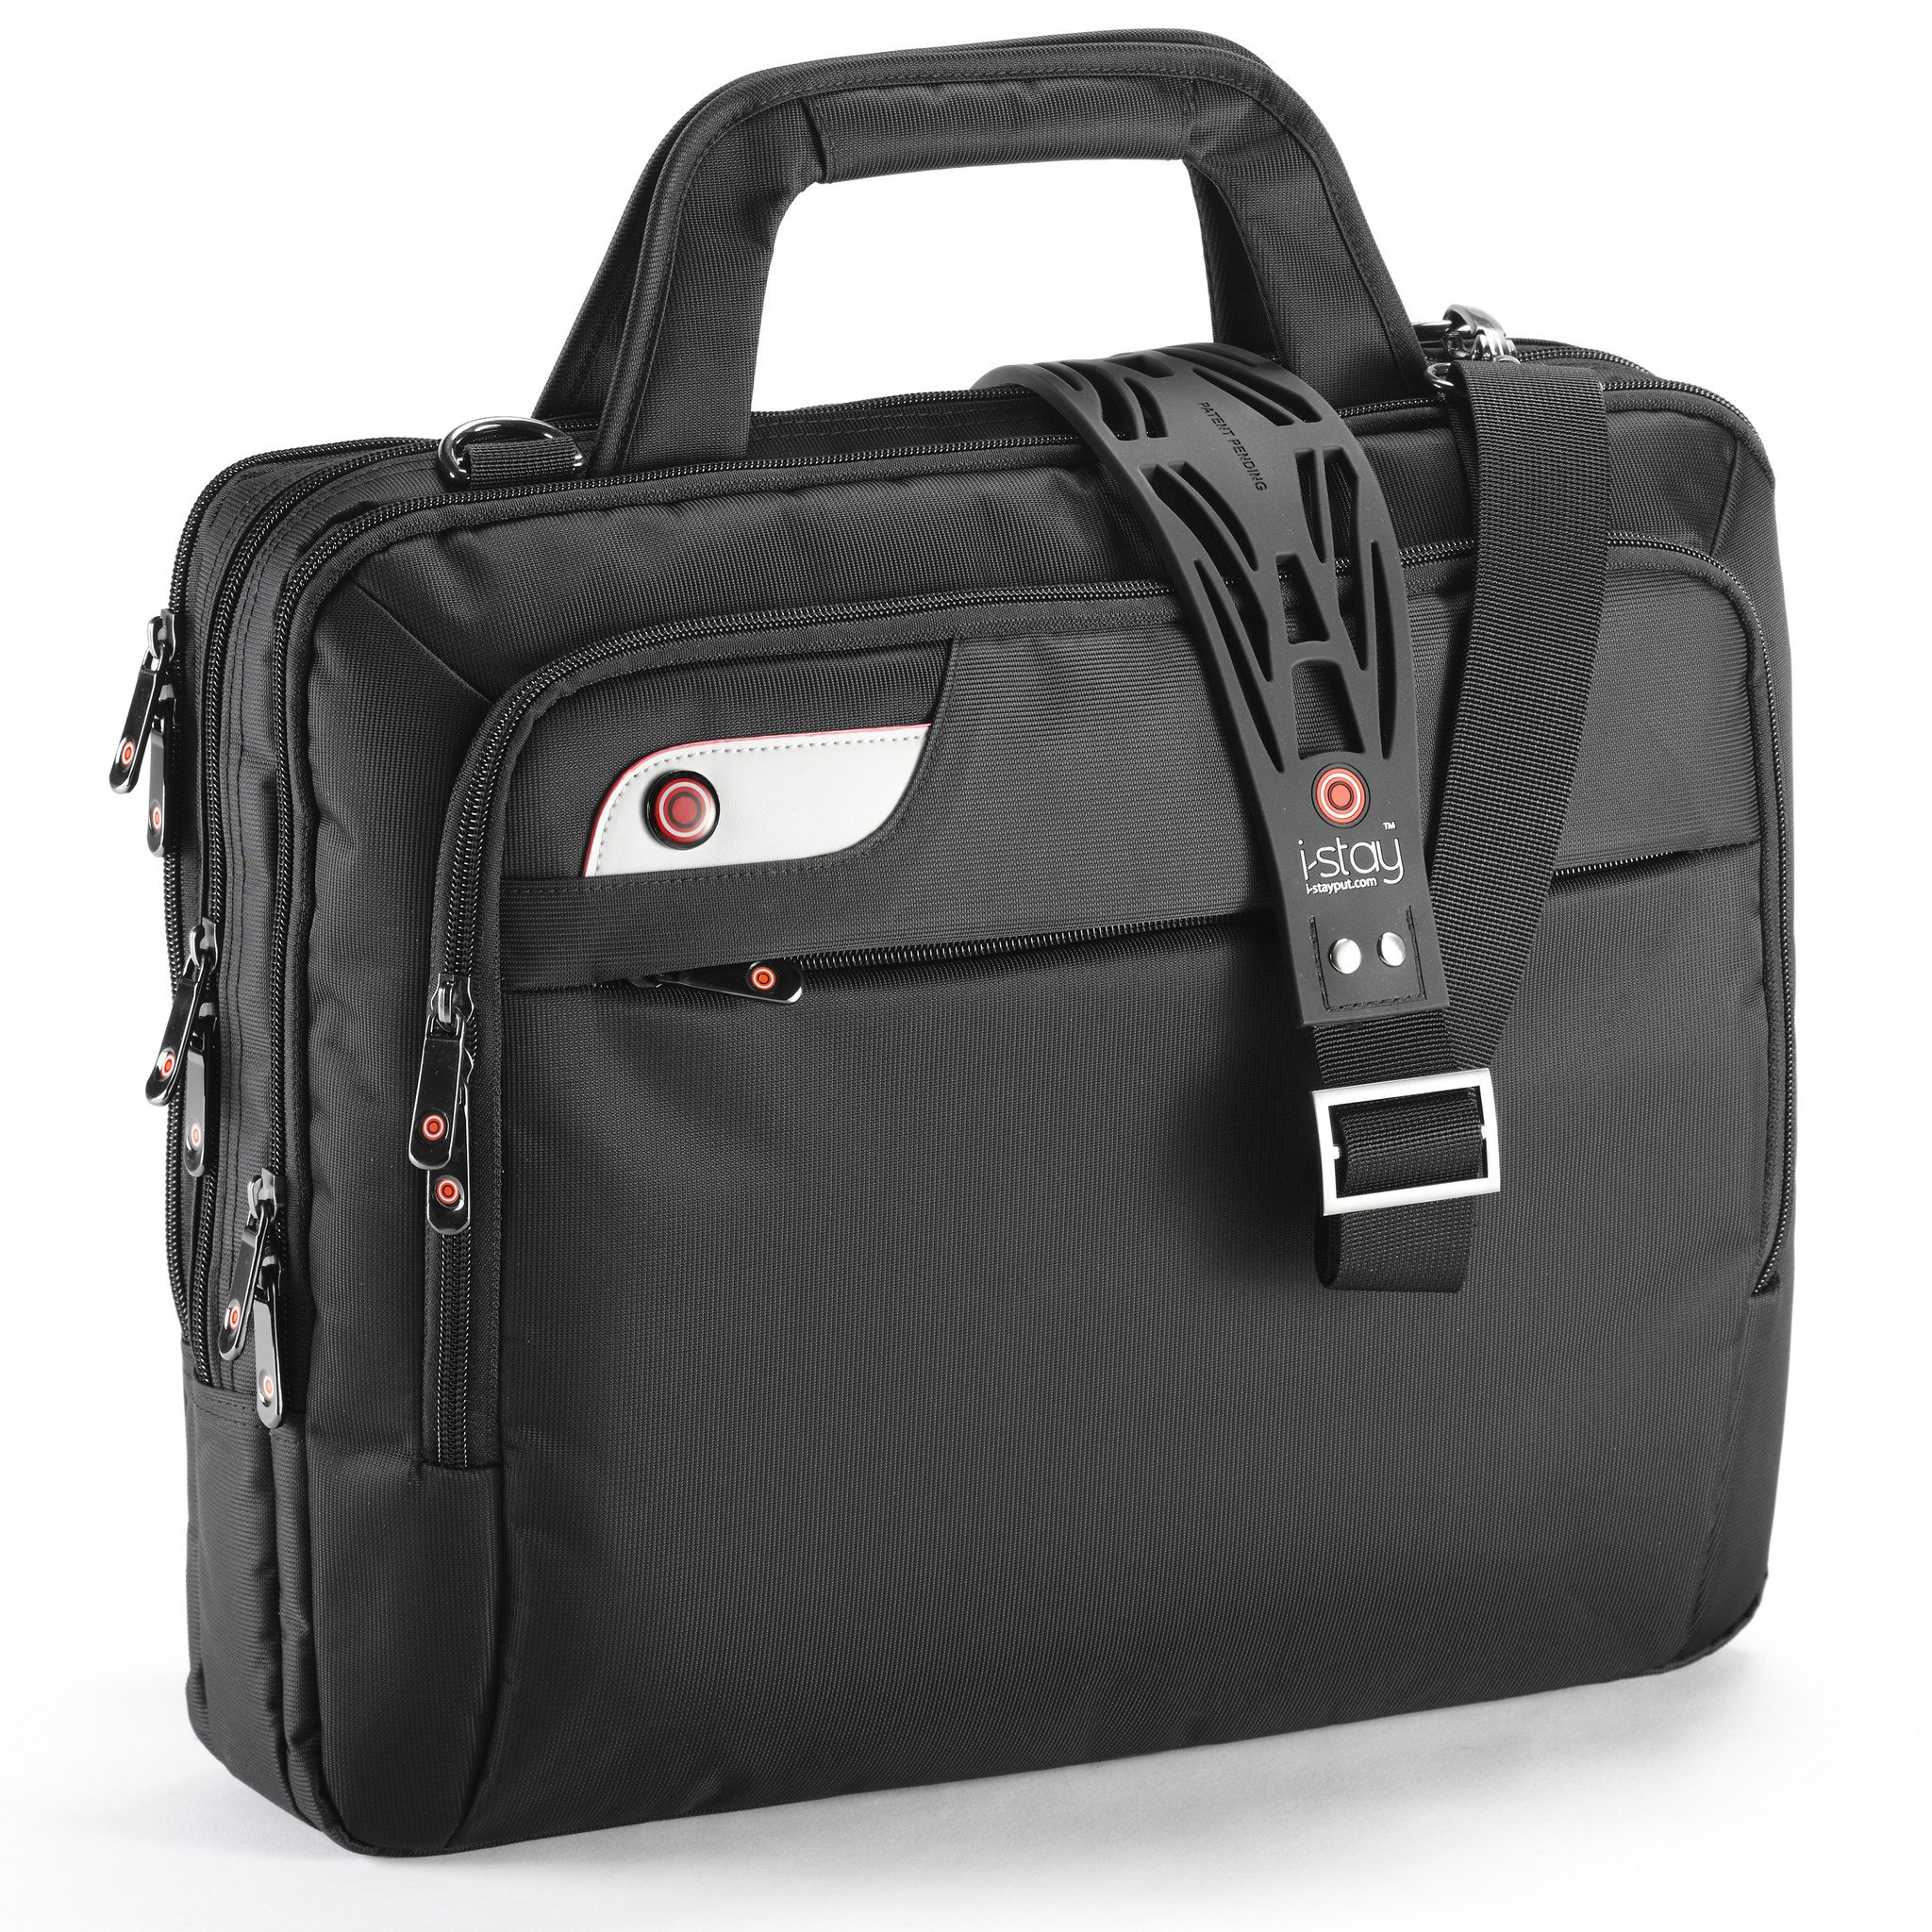 Briefcase clipart laptop bag. I stay launch organiser